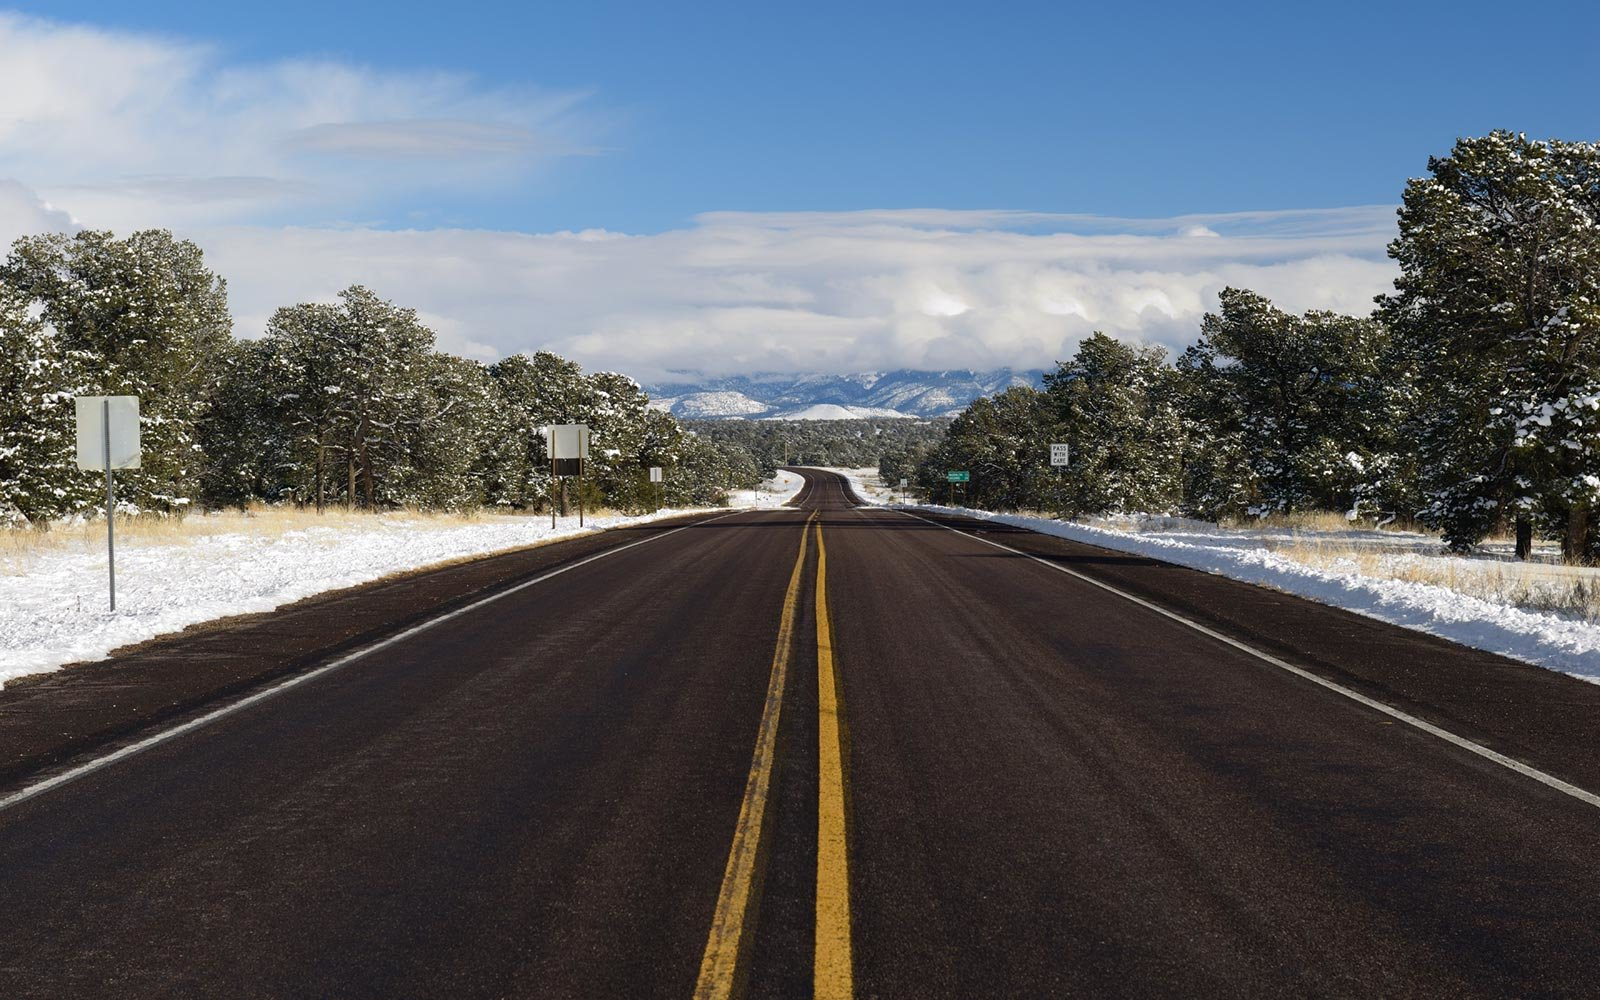 Route 60, Cibola National Forest, New Mexico